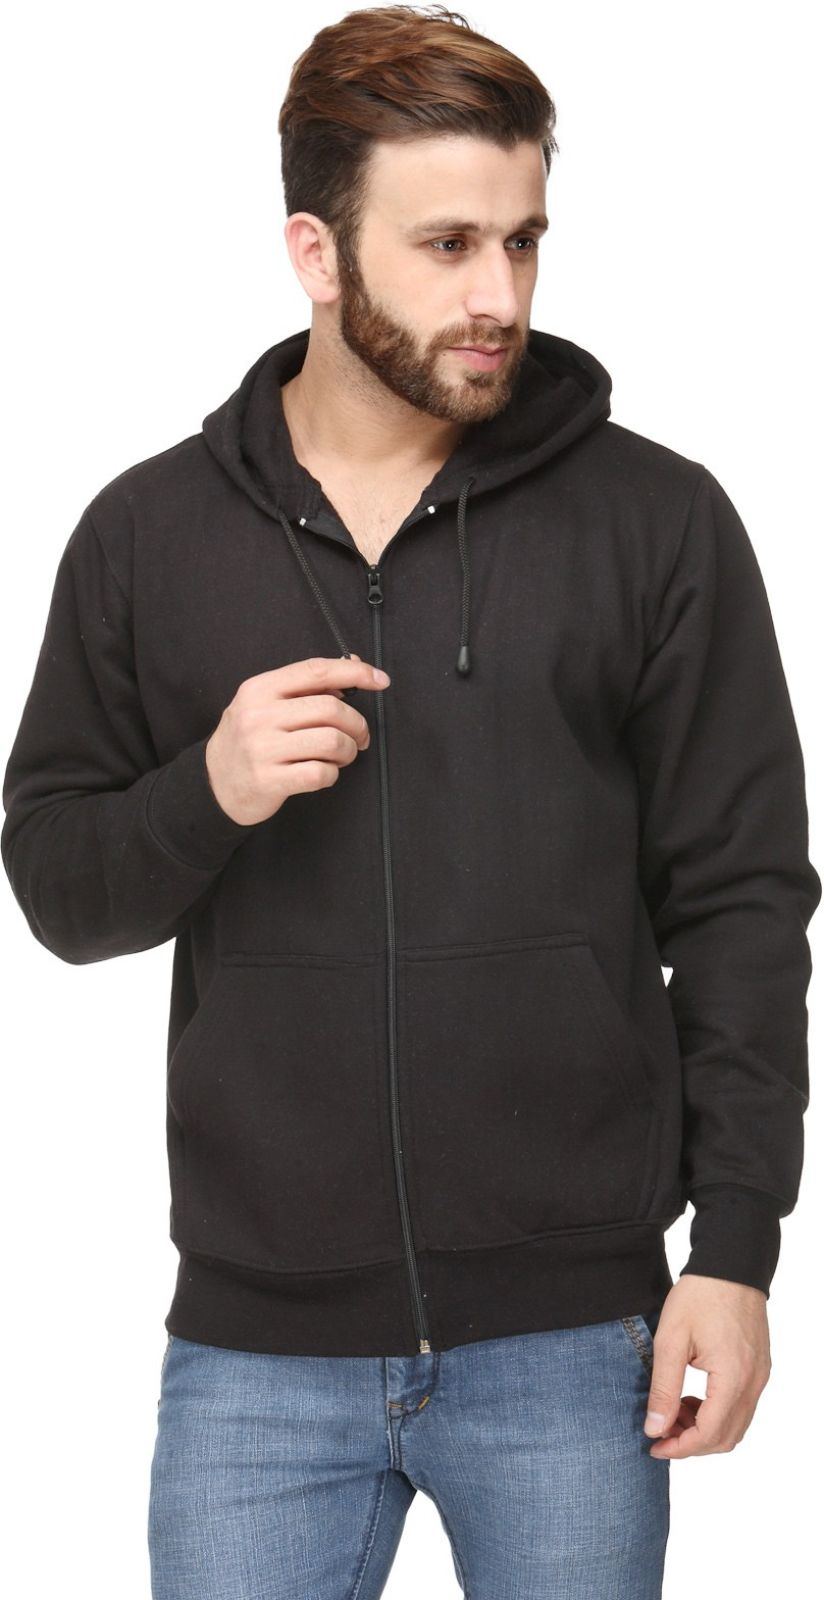 Scott International Full Sleeve Solid Mens Sweatshirt